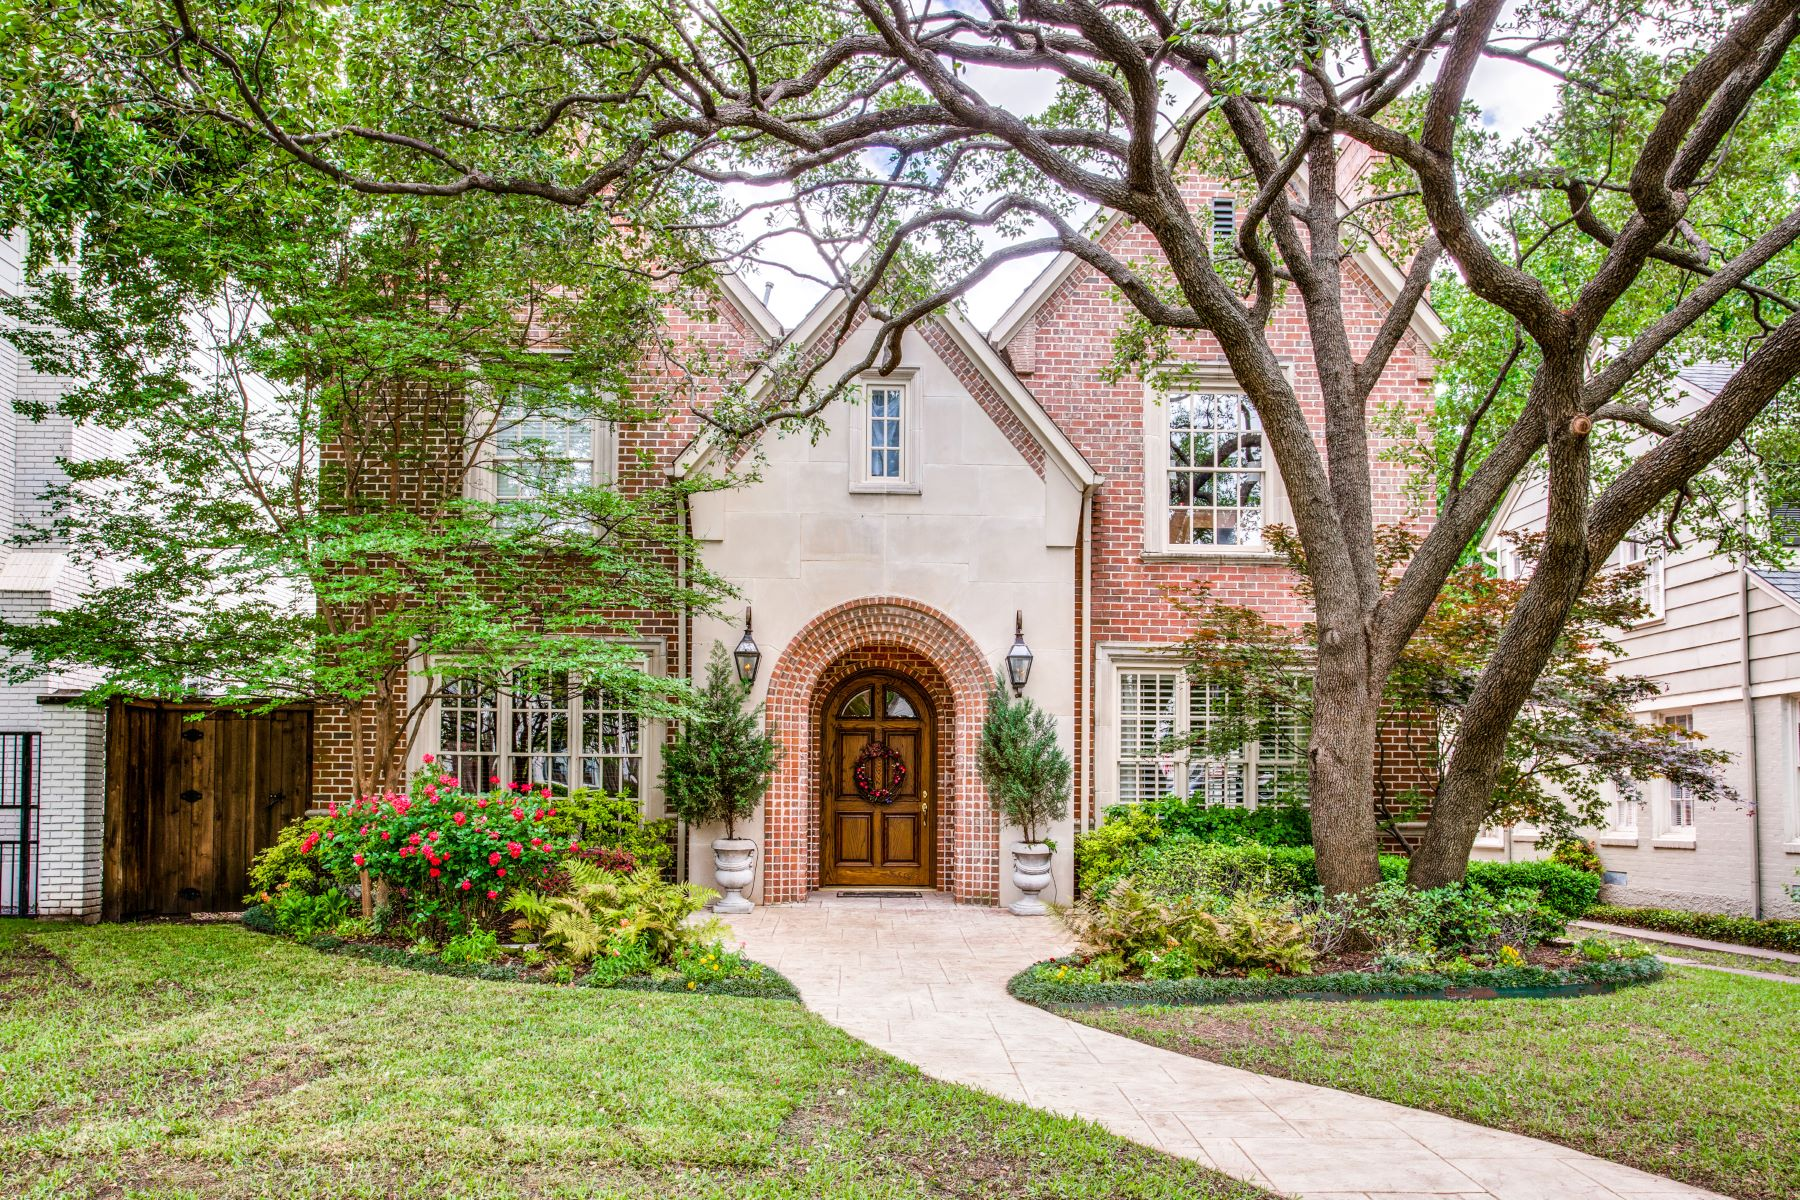 Single Family Homes for Sale at 3909 Bryn Mawr Drive University Park, Texas 75225 United States